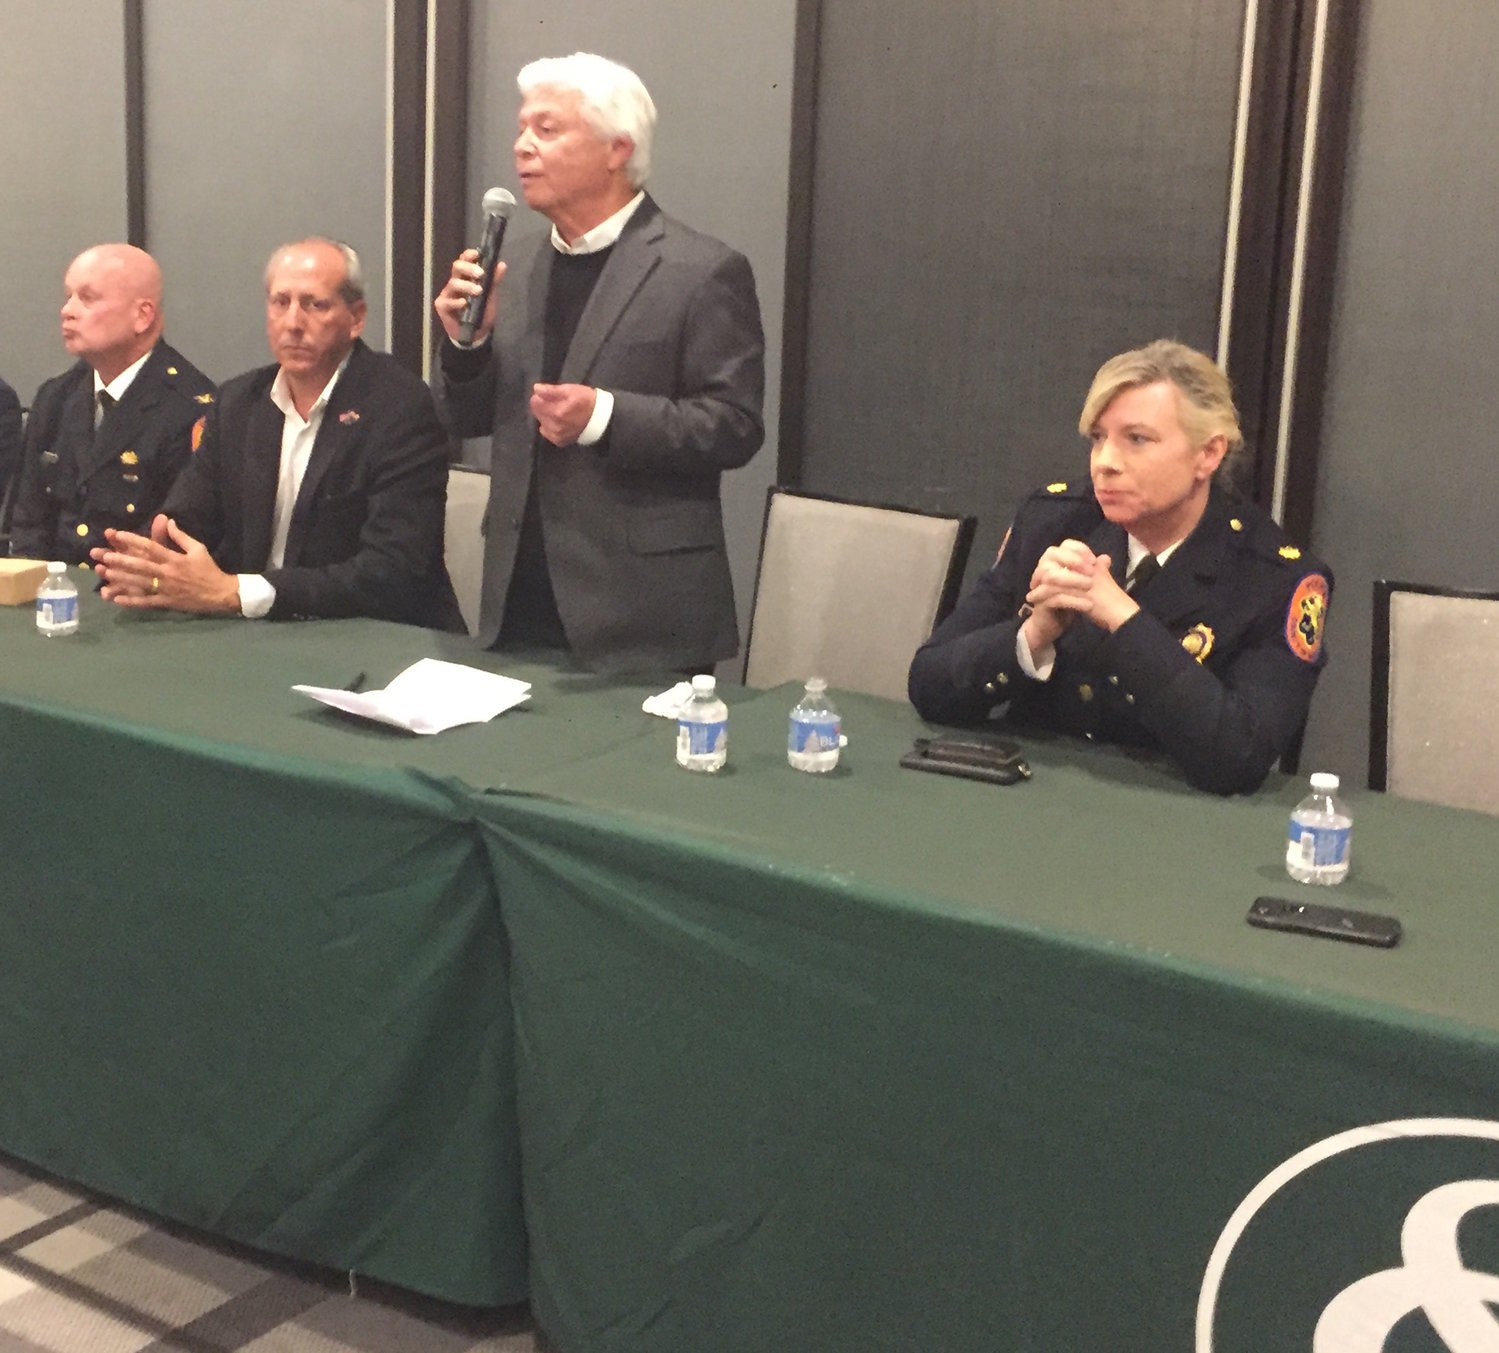 Hewlett Harbor Mayor Mark Weiss addressed residents at the Seawane Country Club on Oct. 15 about recent criminal activity in the village. With him were, from left, 4th Precinct Commanding Officer Joseph Barbieri, village Trustee Tom Cohen and Sgt. Leslie Moulds.